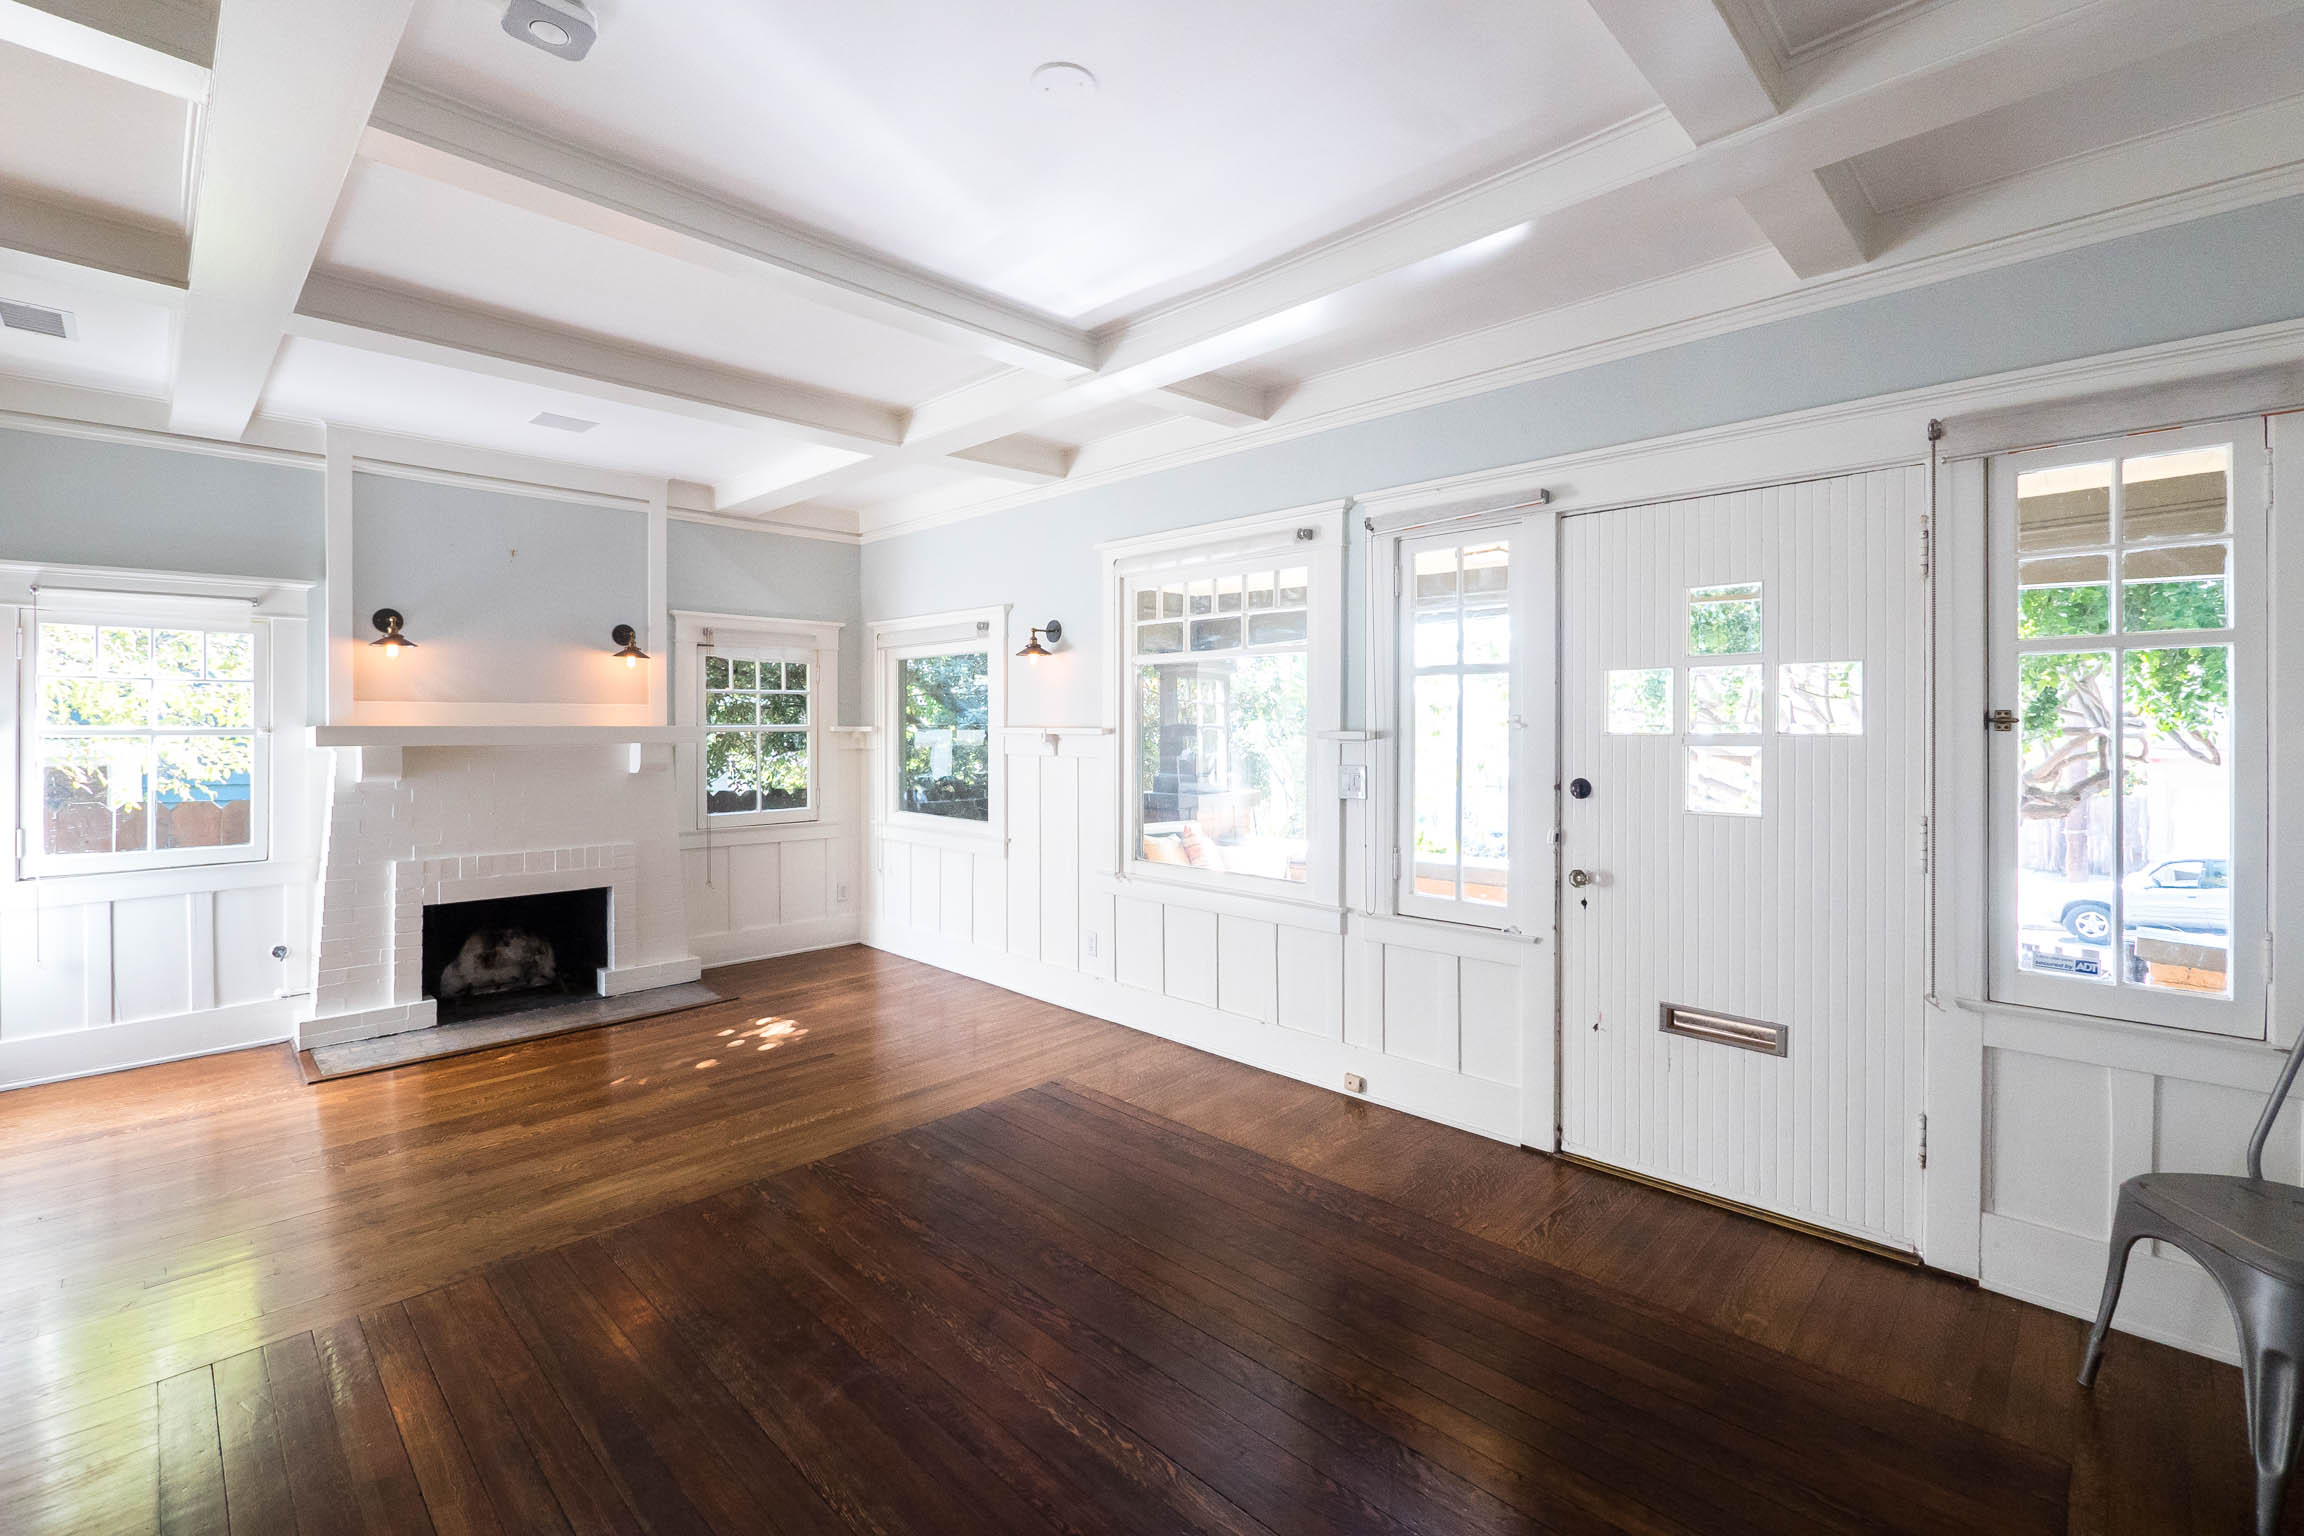 Charming Silver Lake Craftsman | Enclosed Yard & Patio | All Appliances & Central Air | Excellent Location One Block to Sunset